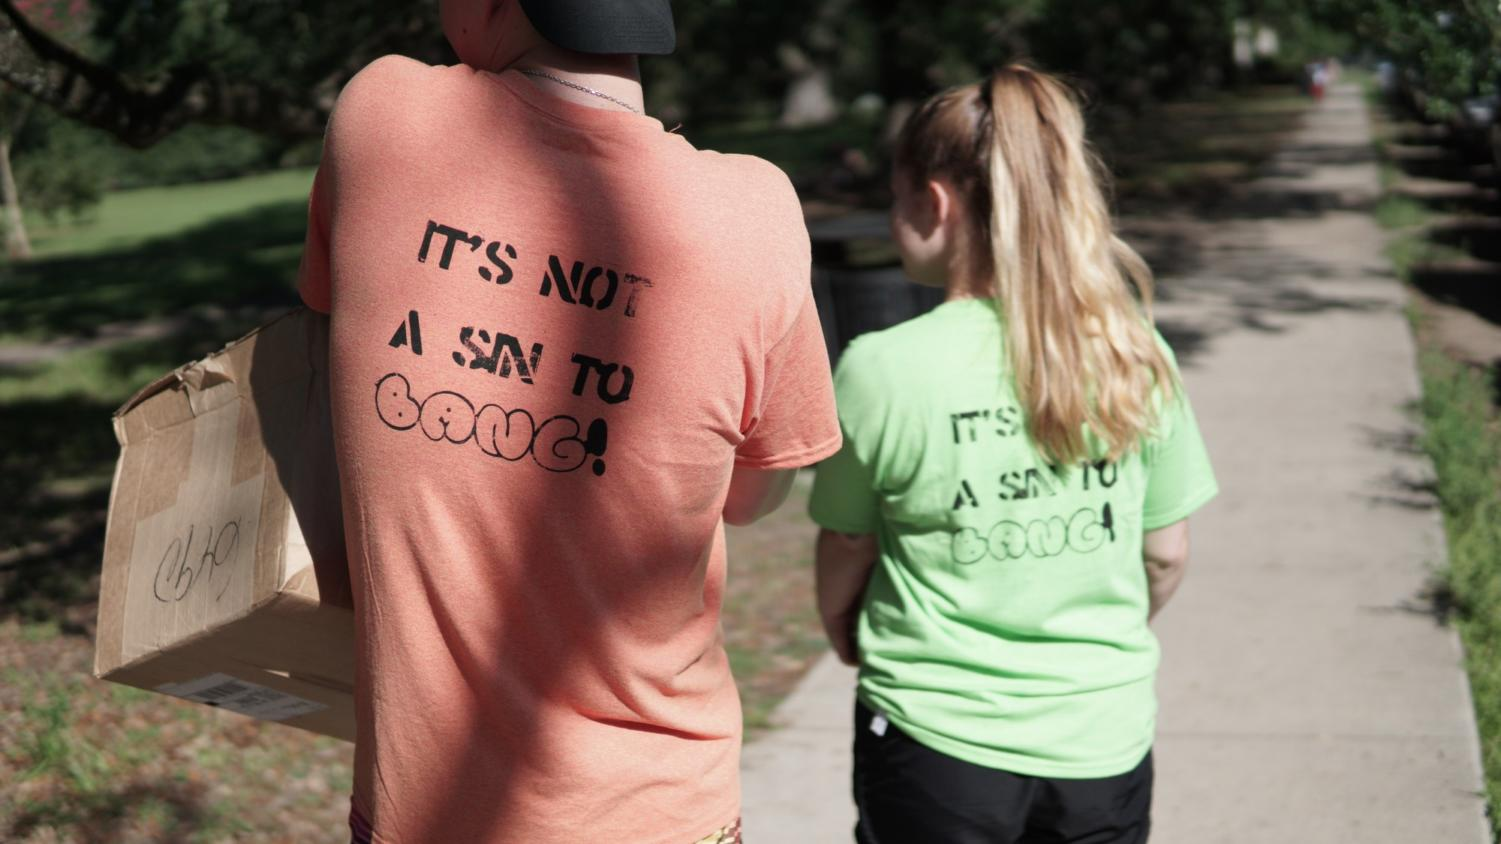 A+group+of+Loyola+students+created+shirts+to+counter+the+Westboro+Baptist+Church+protesters.+Photo+credit%3A+Jacob+Meyer